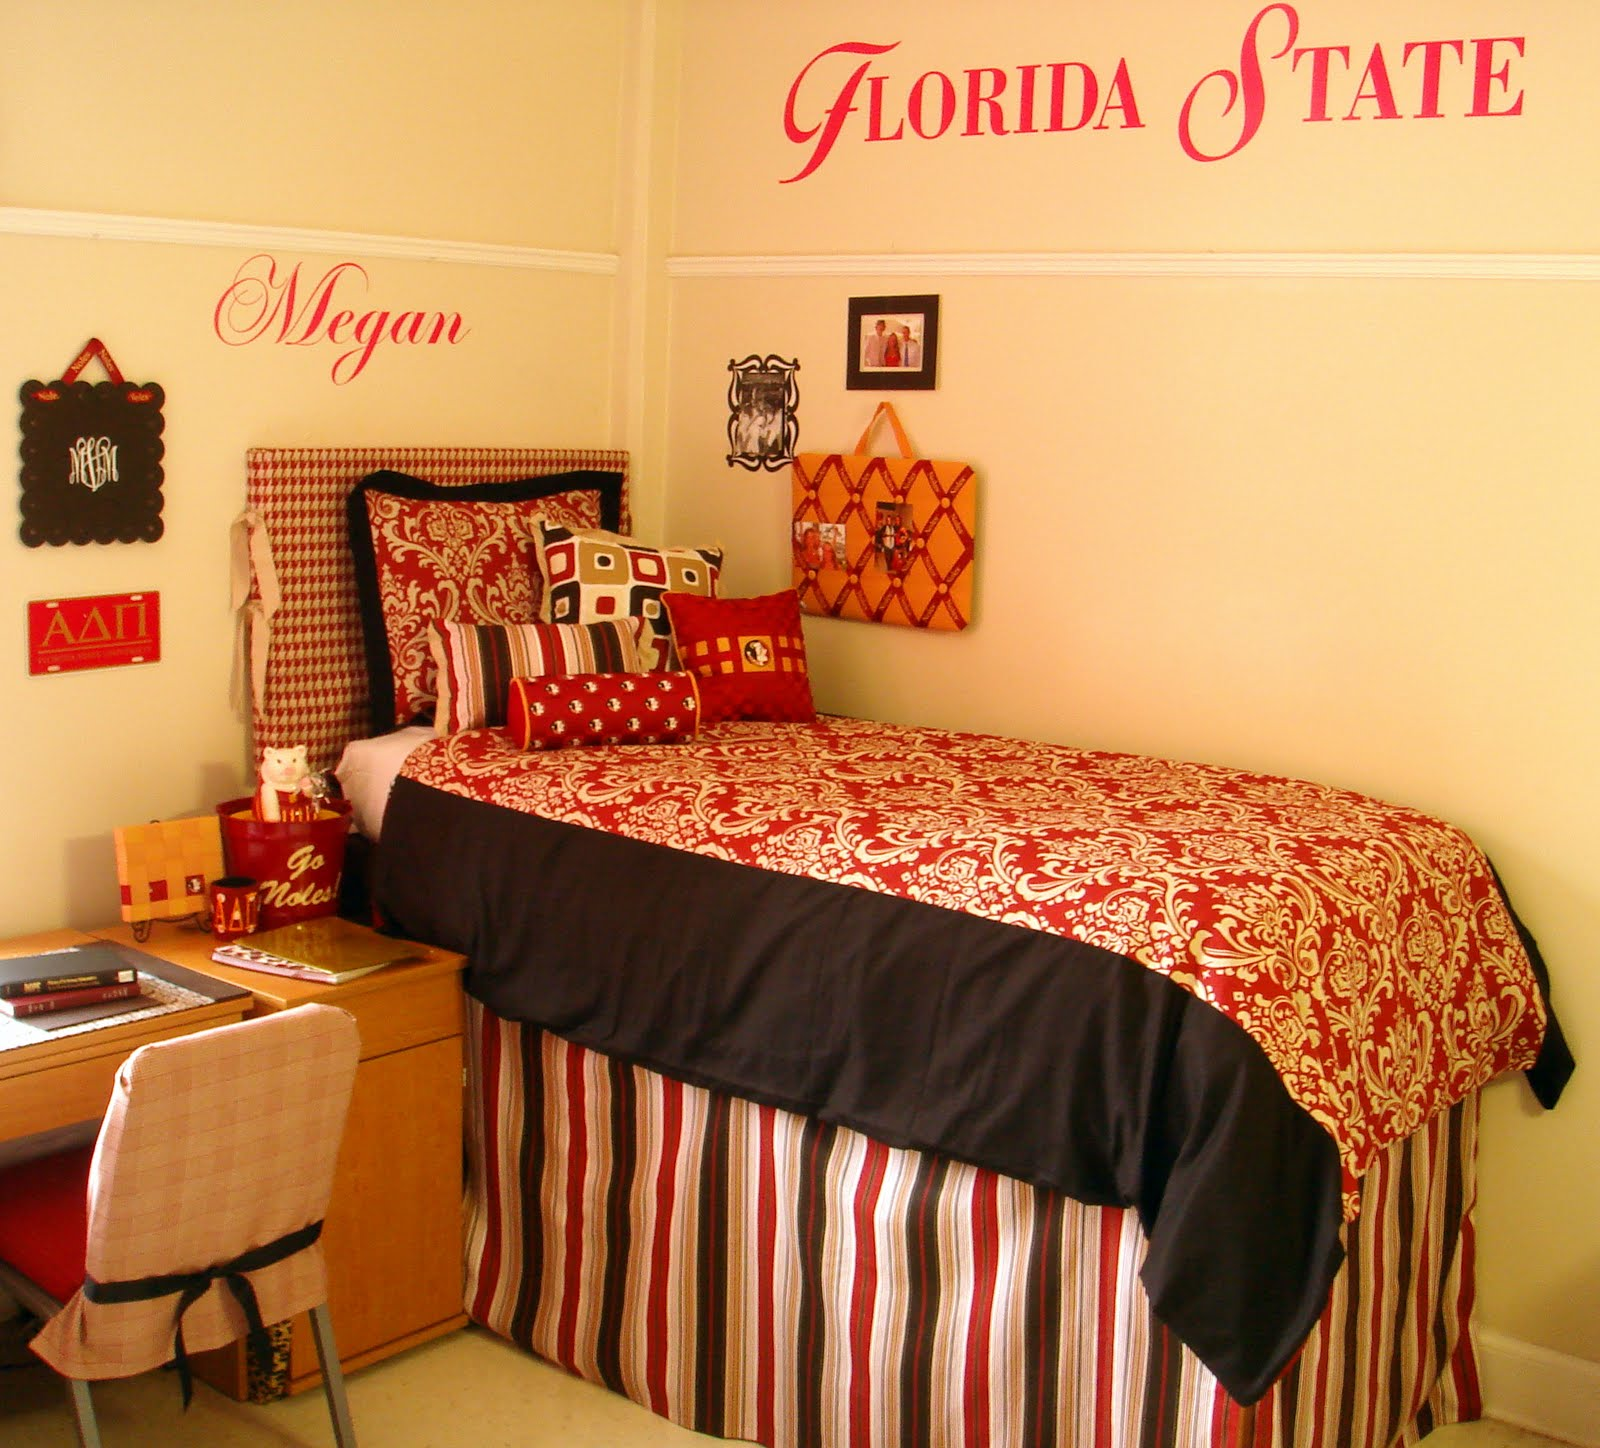 Decor 2 ur door dorm bedding ideas dorm room bedding - College room decor ideas ...